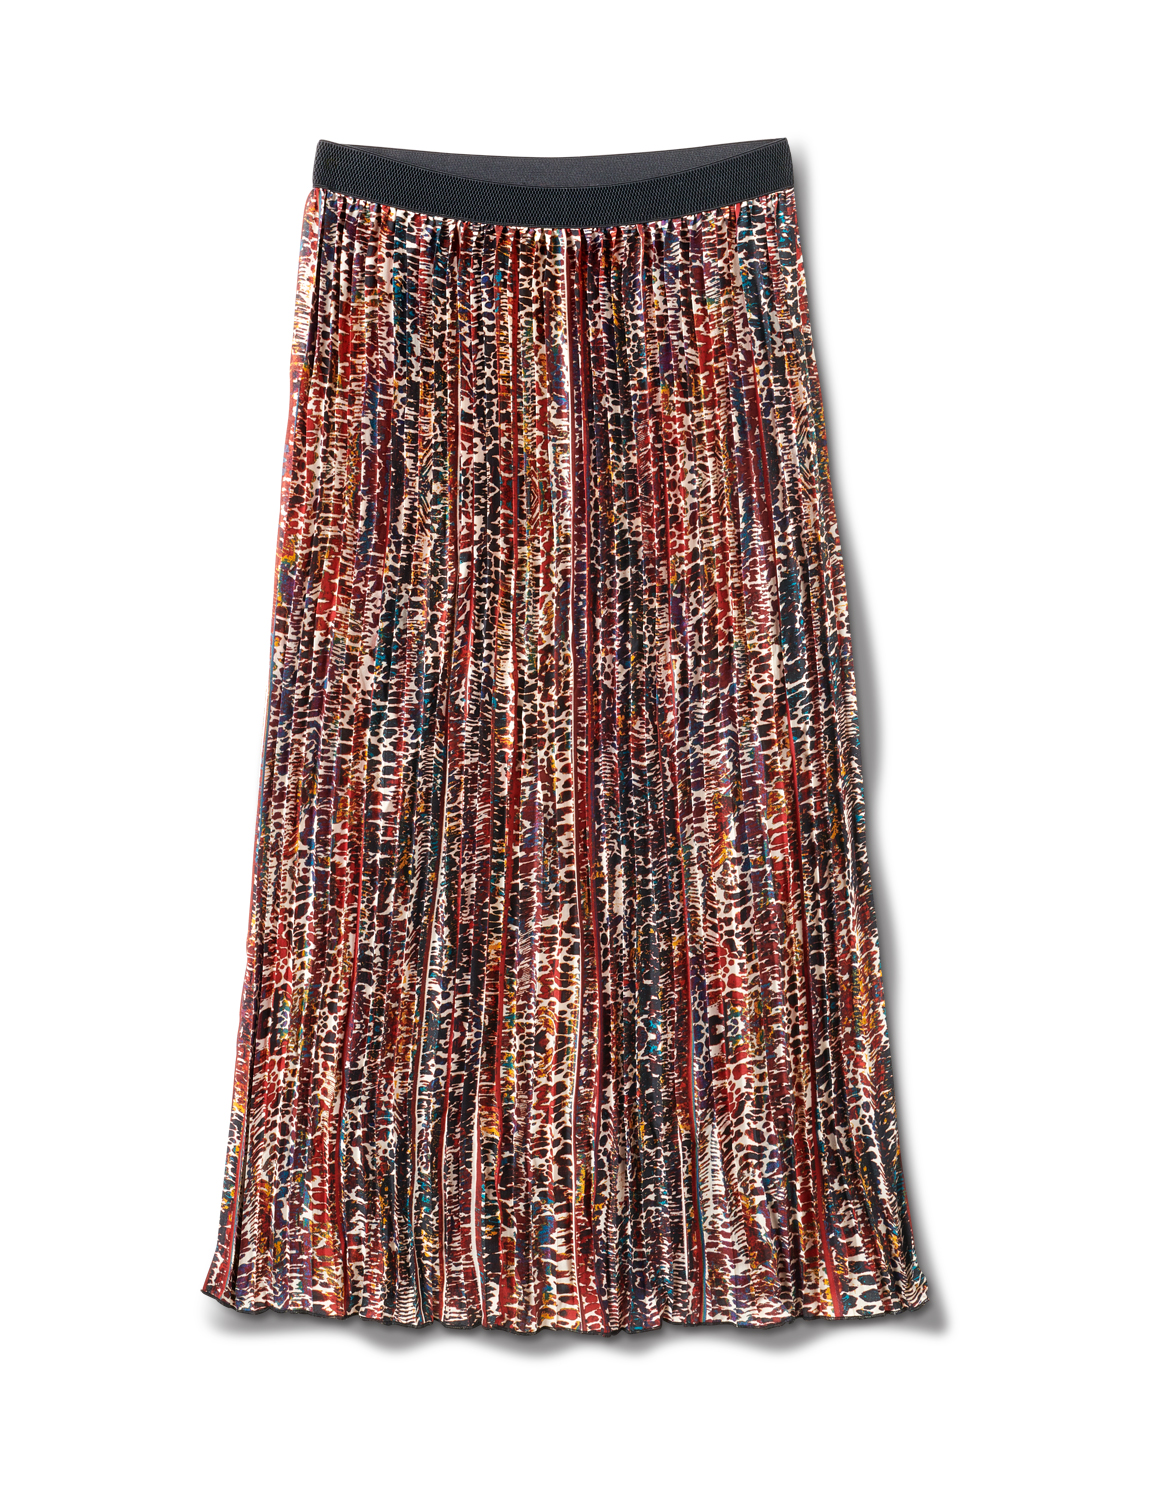 Printed Pleated Skirt With Contrast Elastic Waistband - Animal - Front